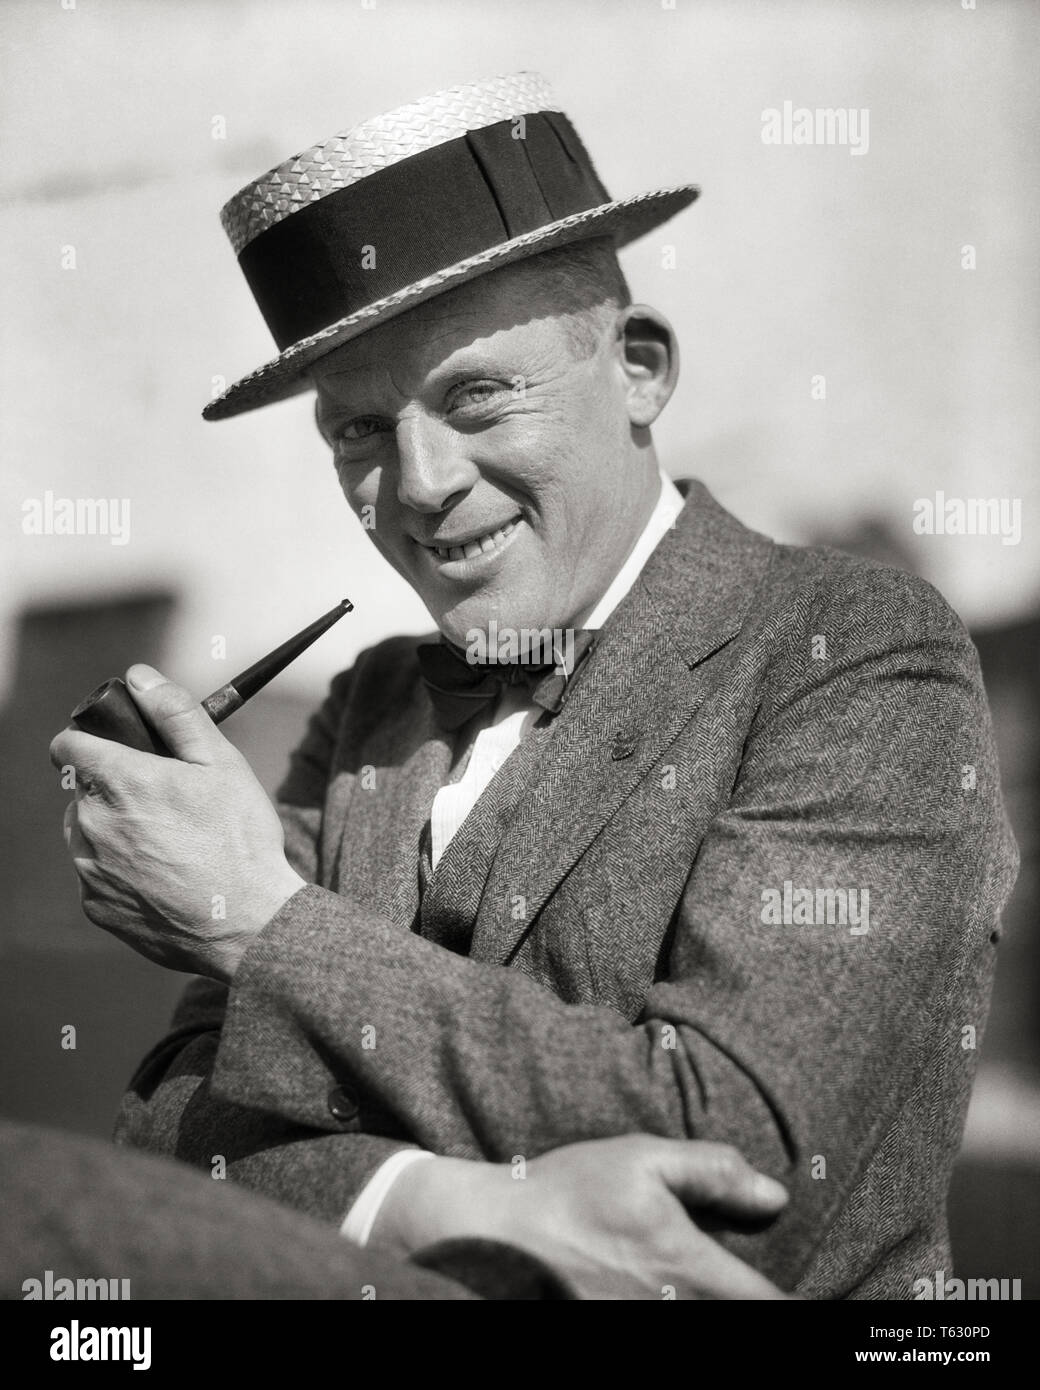 4a4c5e094506ab 1920s PORTRAIT SMILING MAN SMOKING A PIPE WEARING A STRAW BOATER STYLE HAT  SUIT BOW TIE